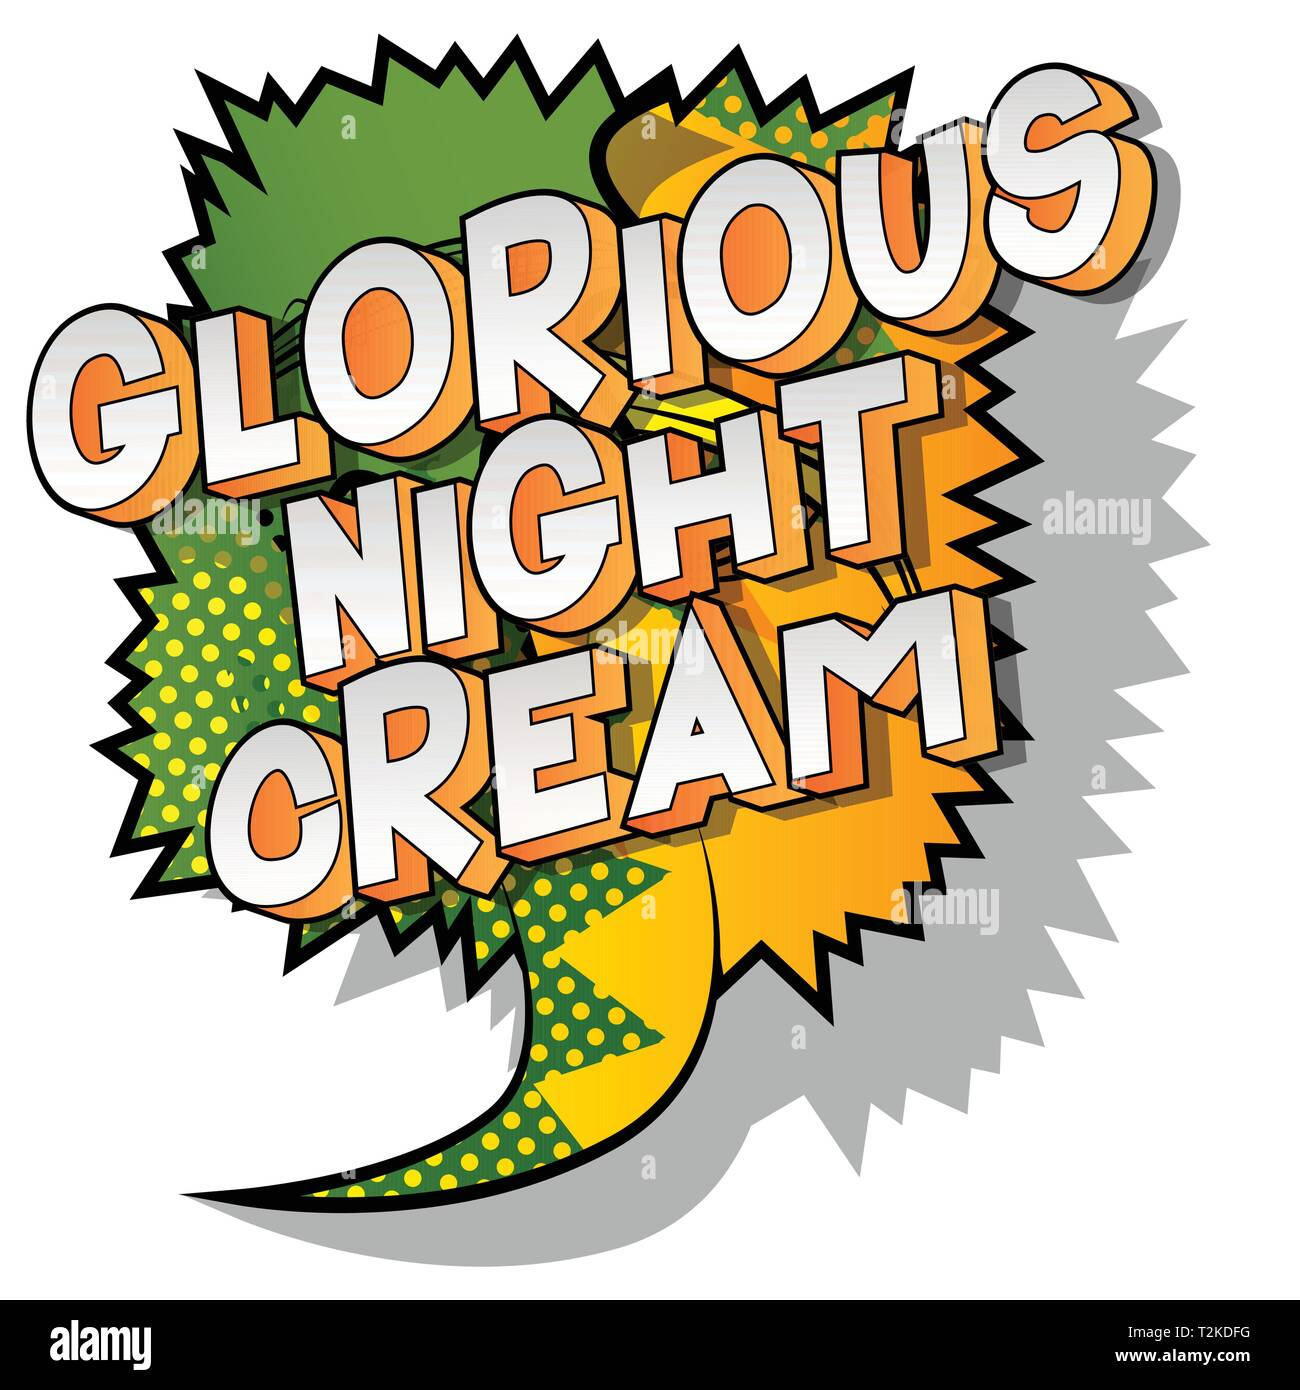 Glorious Night Cream - Vector illustrated comic book style phrase on abstract background. - Stock Image